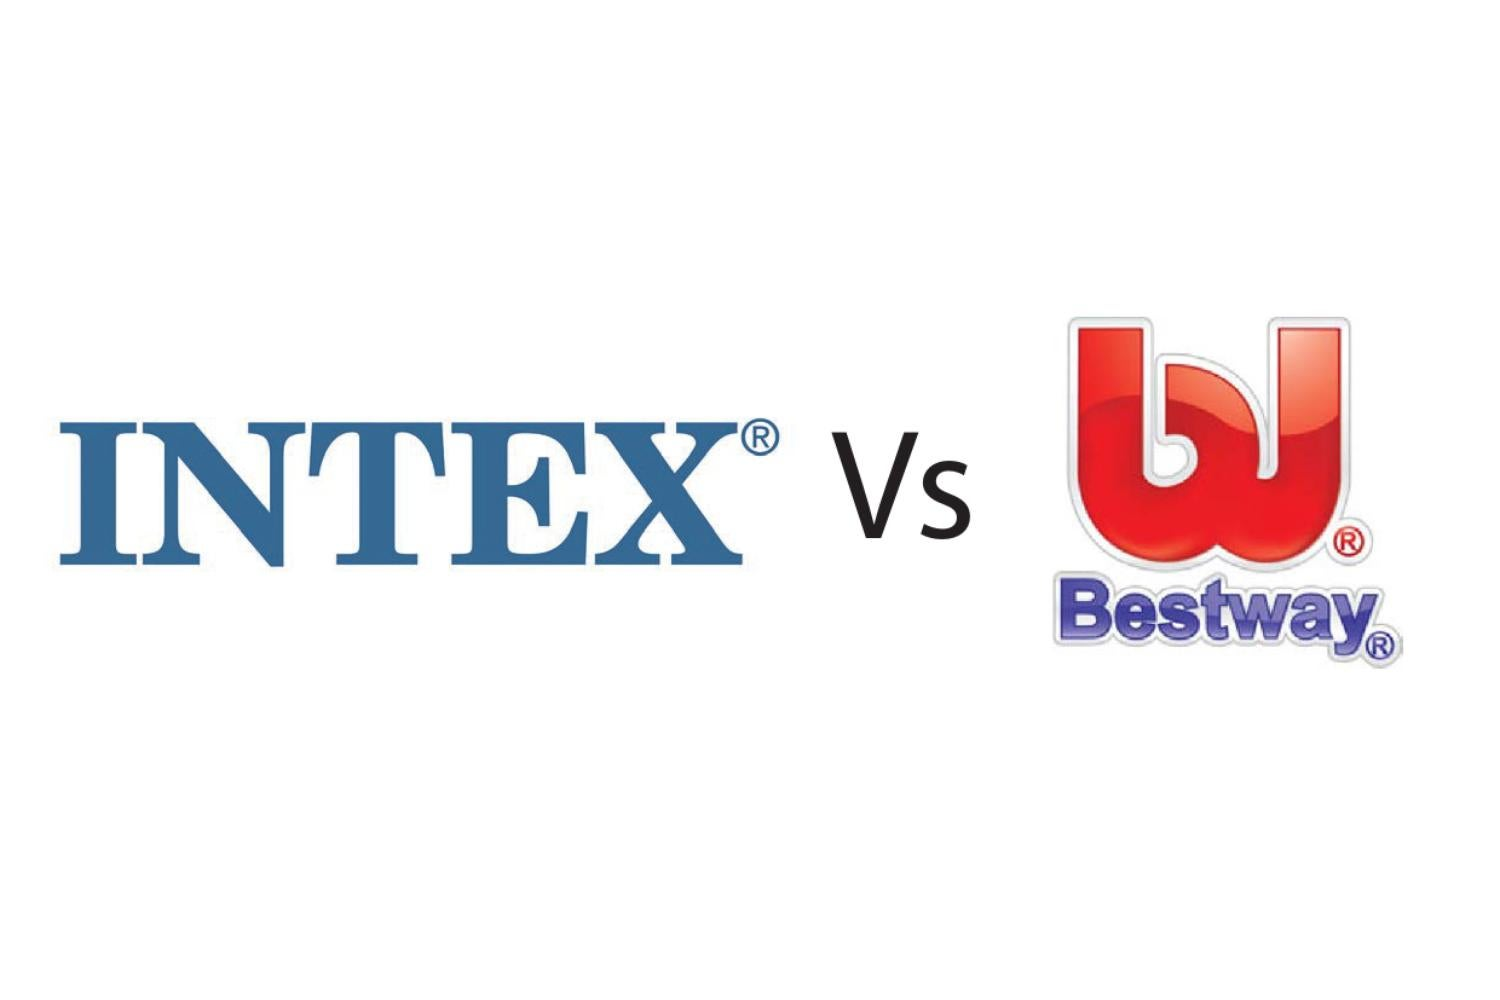 Intex vs bestway by zapf zapf issuu for Bestway vs intex